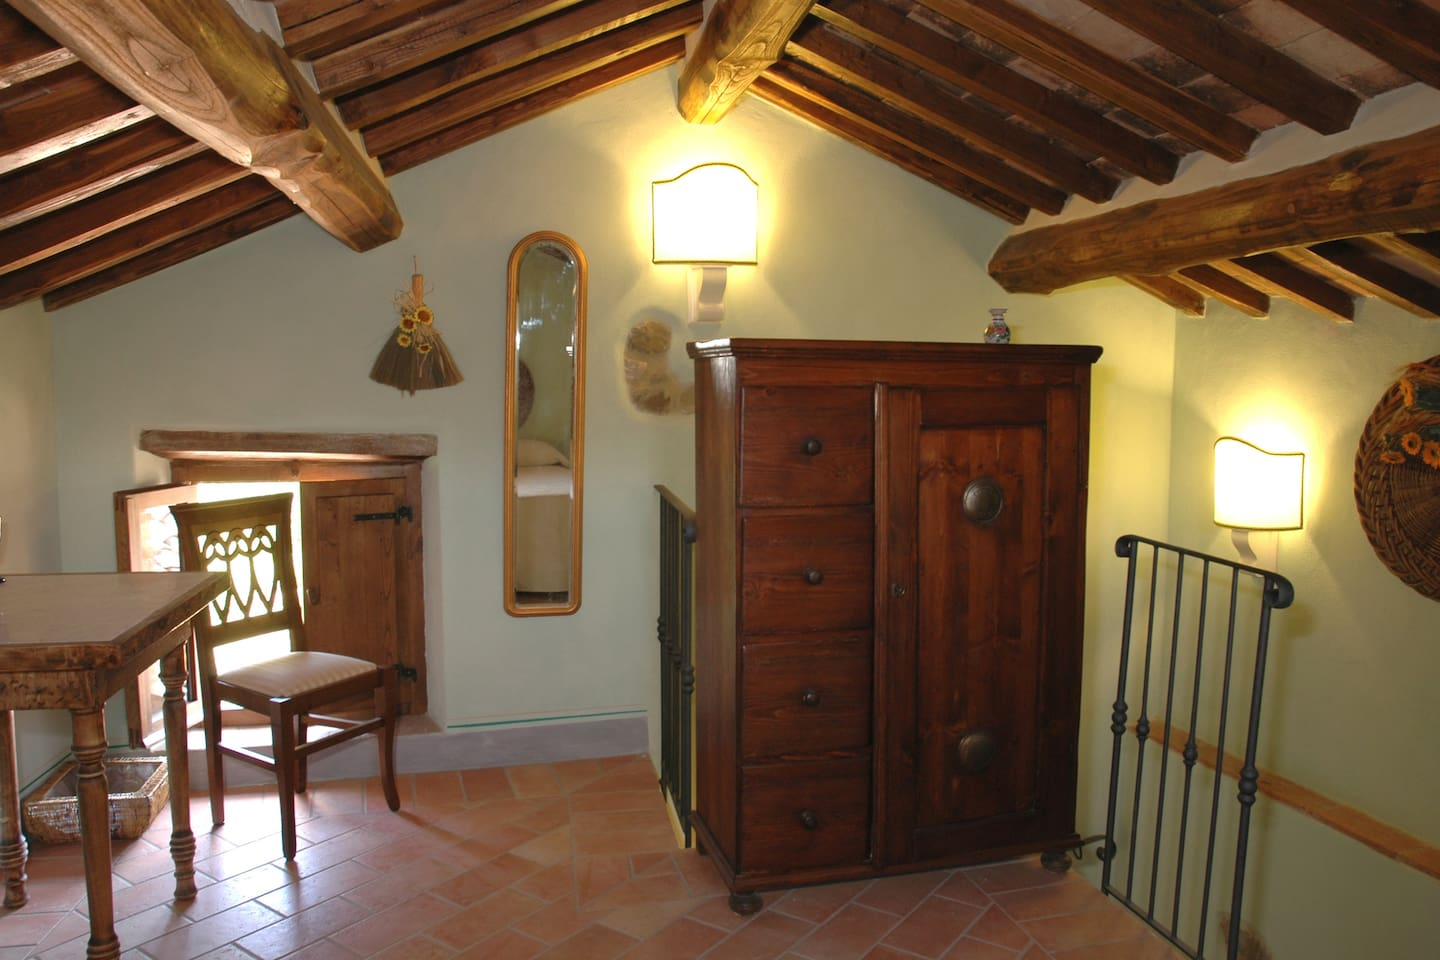 Fra Angelico room, at La Preghiera